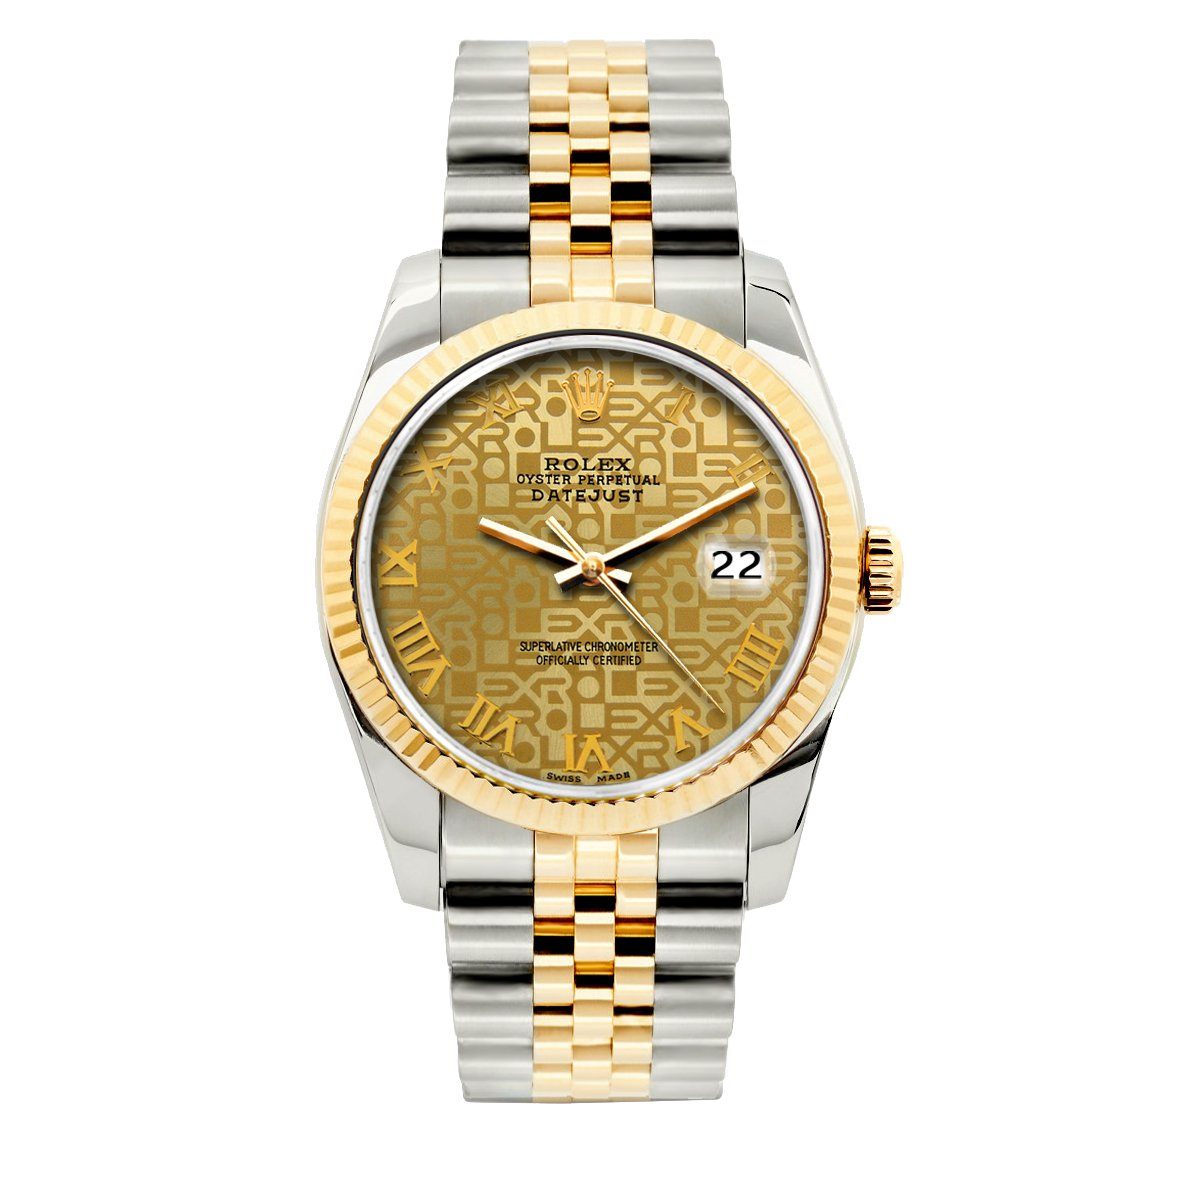 Rolex Datejust 36mm Yellow Gold and Stainless Steel Bracelet Yellow Gold Dial